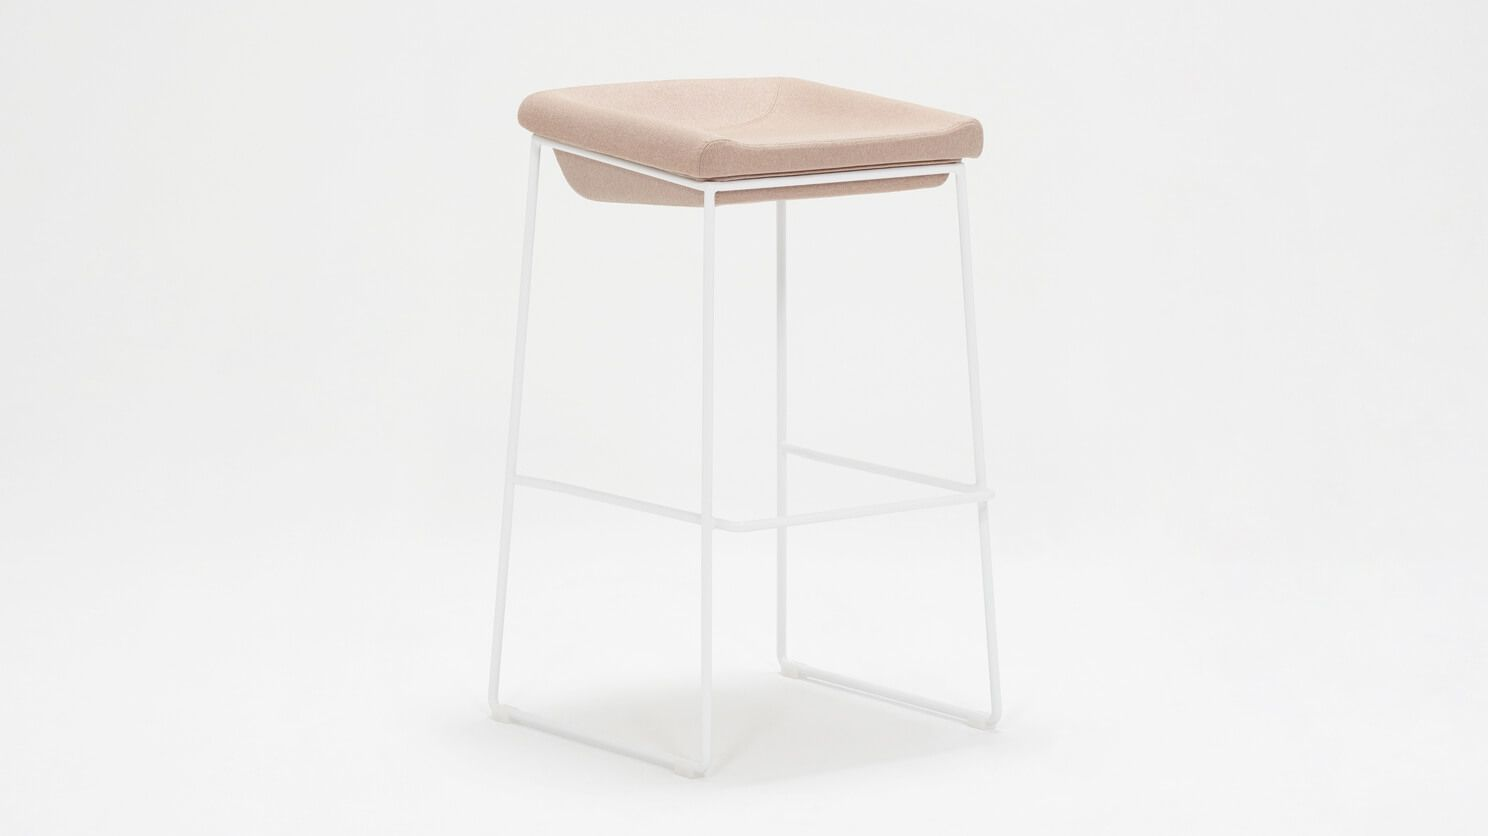 The mackenzie bar stool is a refreshingly fun and comfortable bar